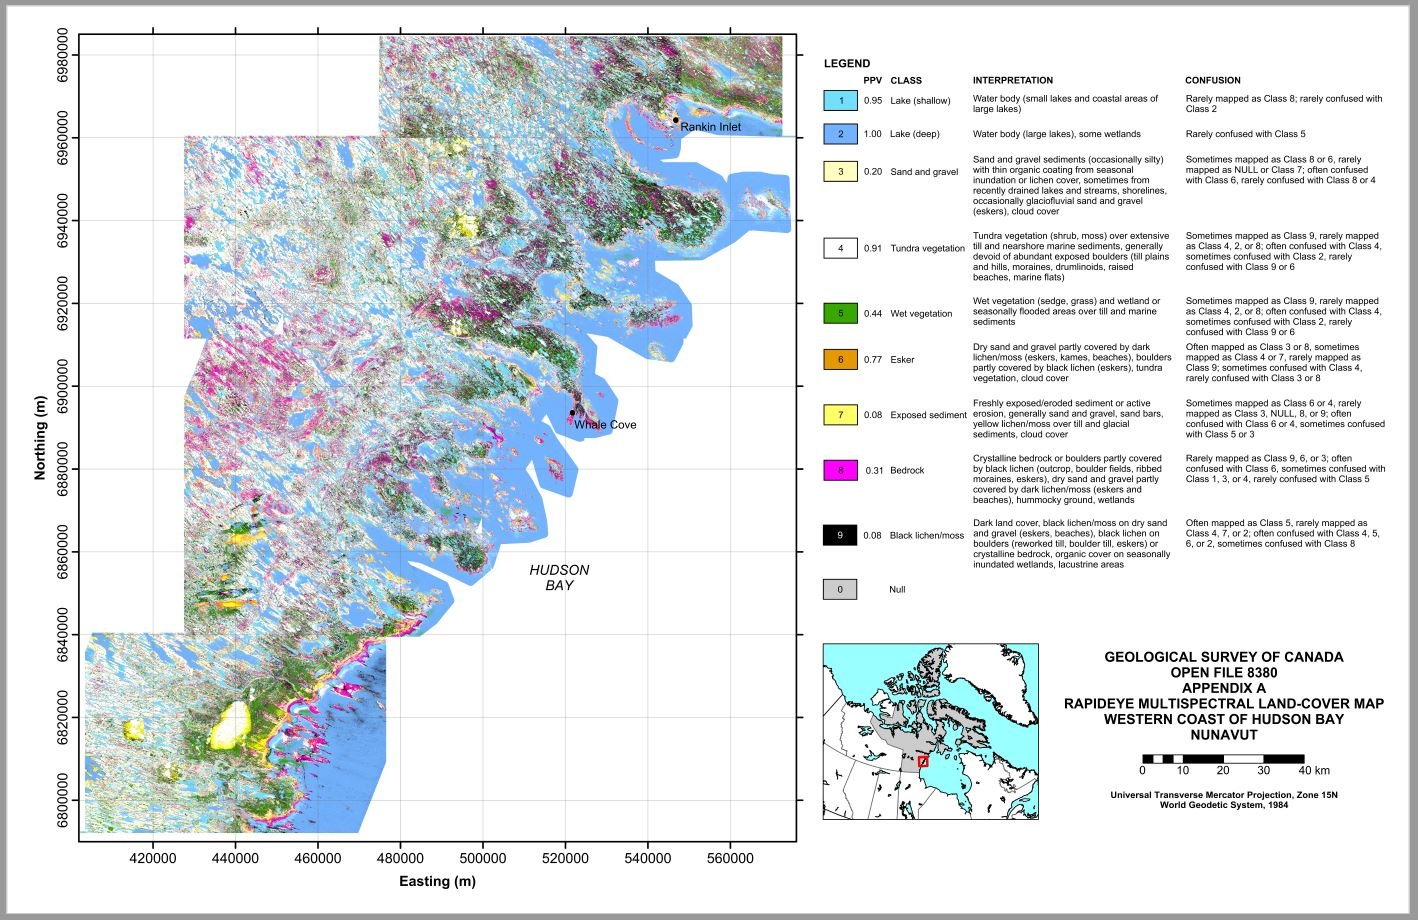 Performance analysis of RapidEye multispectral land-cover mapping for the western coast of Hudson Bay, Nunavut